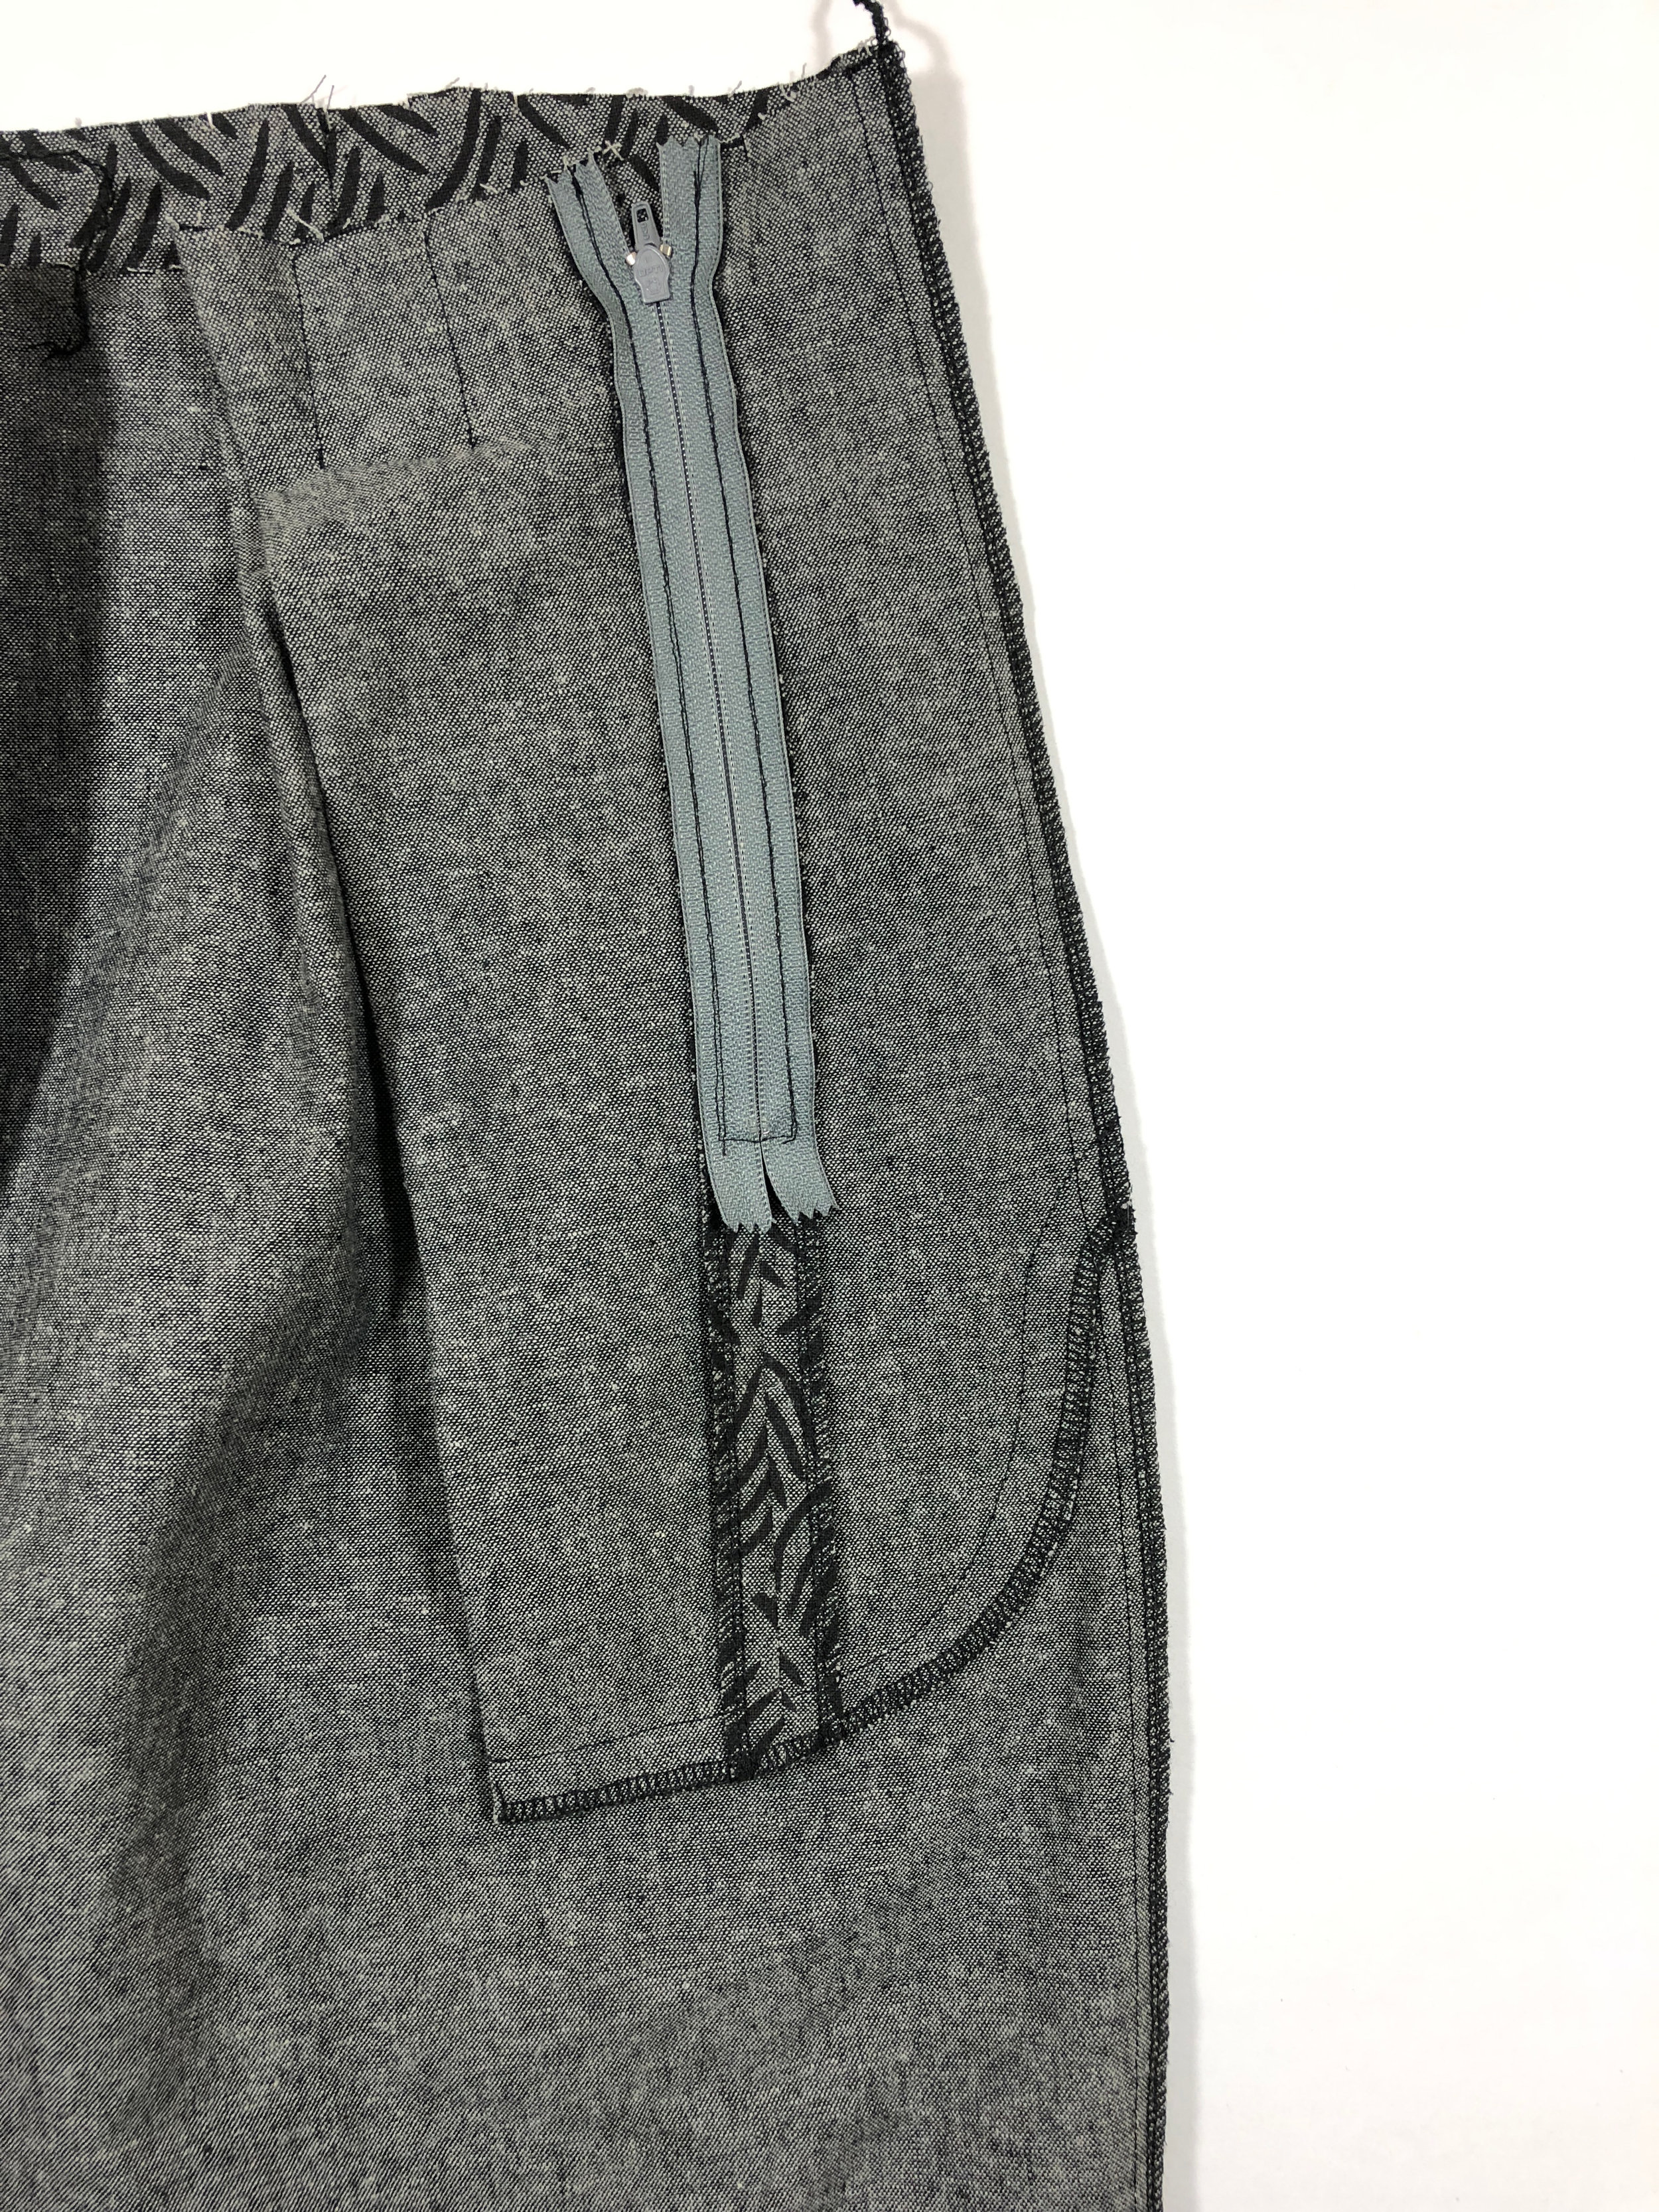 26. Press this seam towards the back pant leg, and serge/finish.  Make sure all these steps are completed on both pant legs before proceeding to the next step.